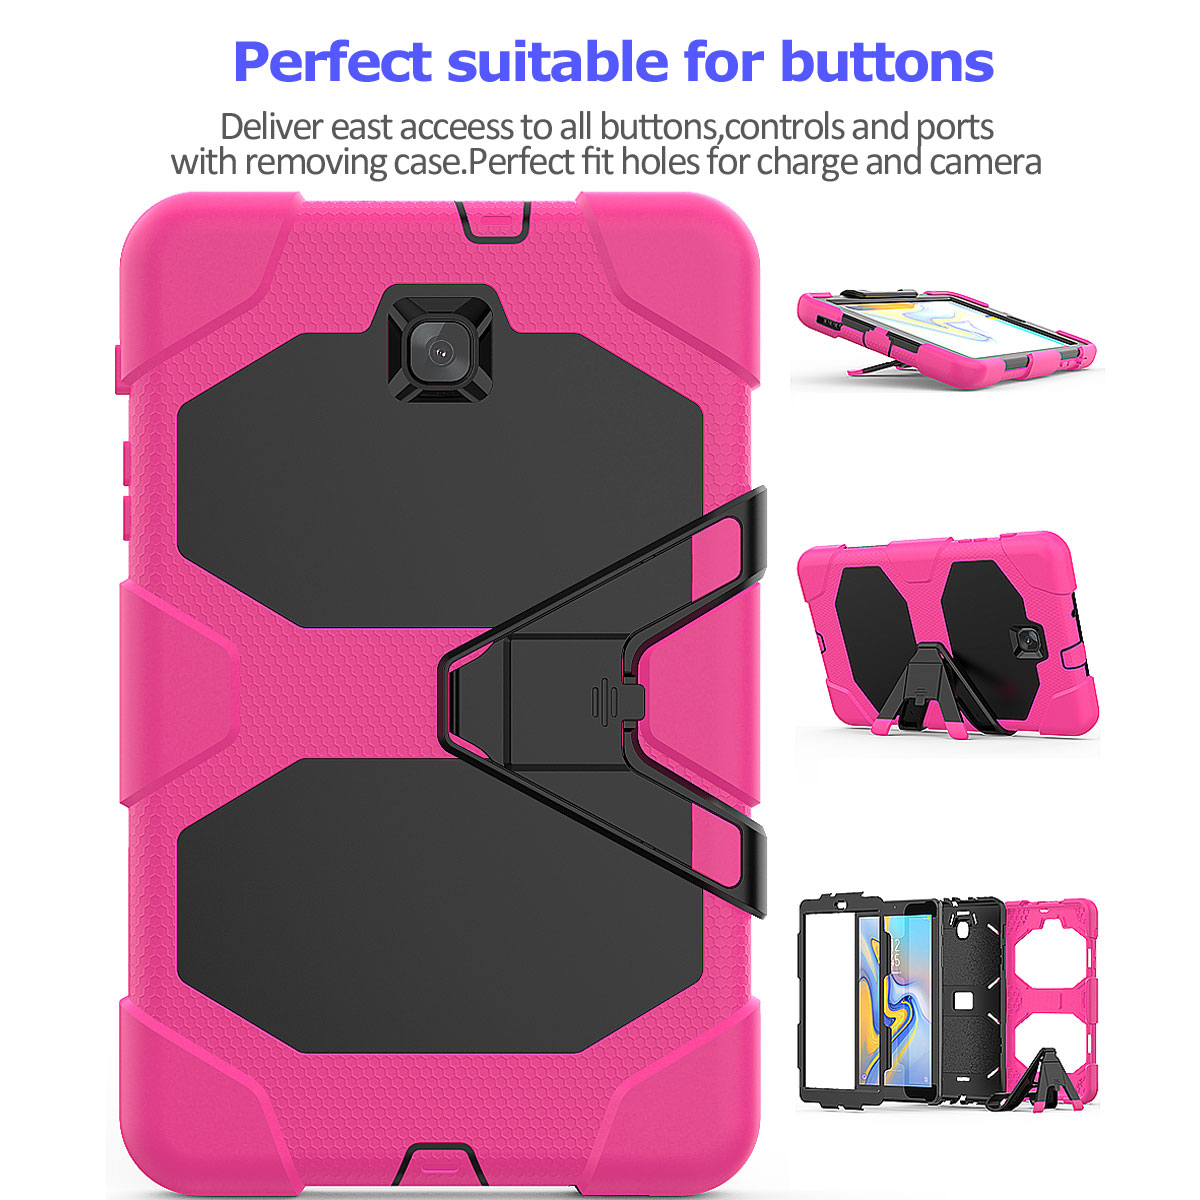 Rugged-Hard-Case-For-Samsung-Galaxy-Tab-A-8-0-2018-SM-T387-with-Screen-Protector thumbnail 18